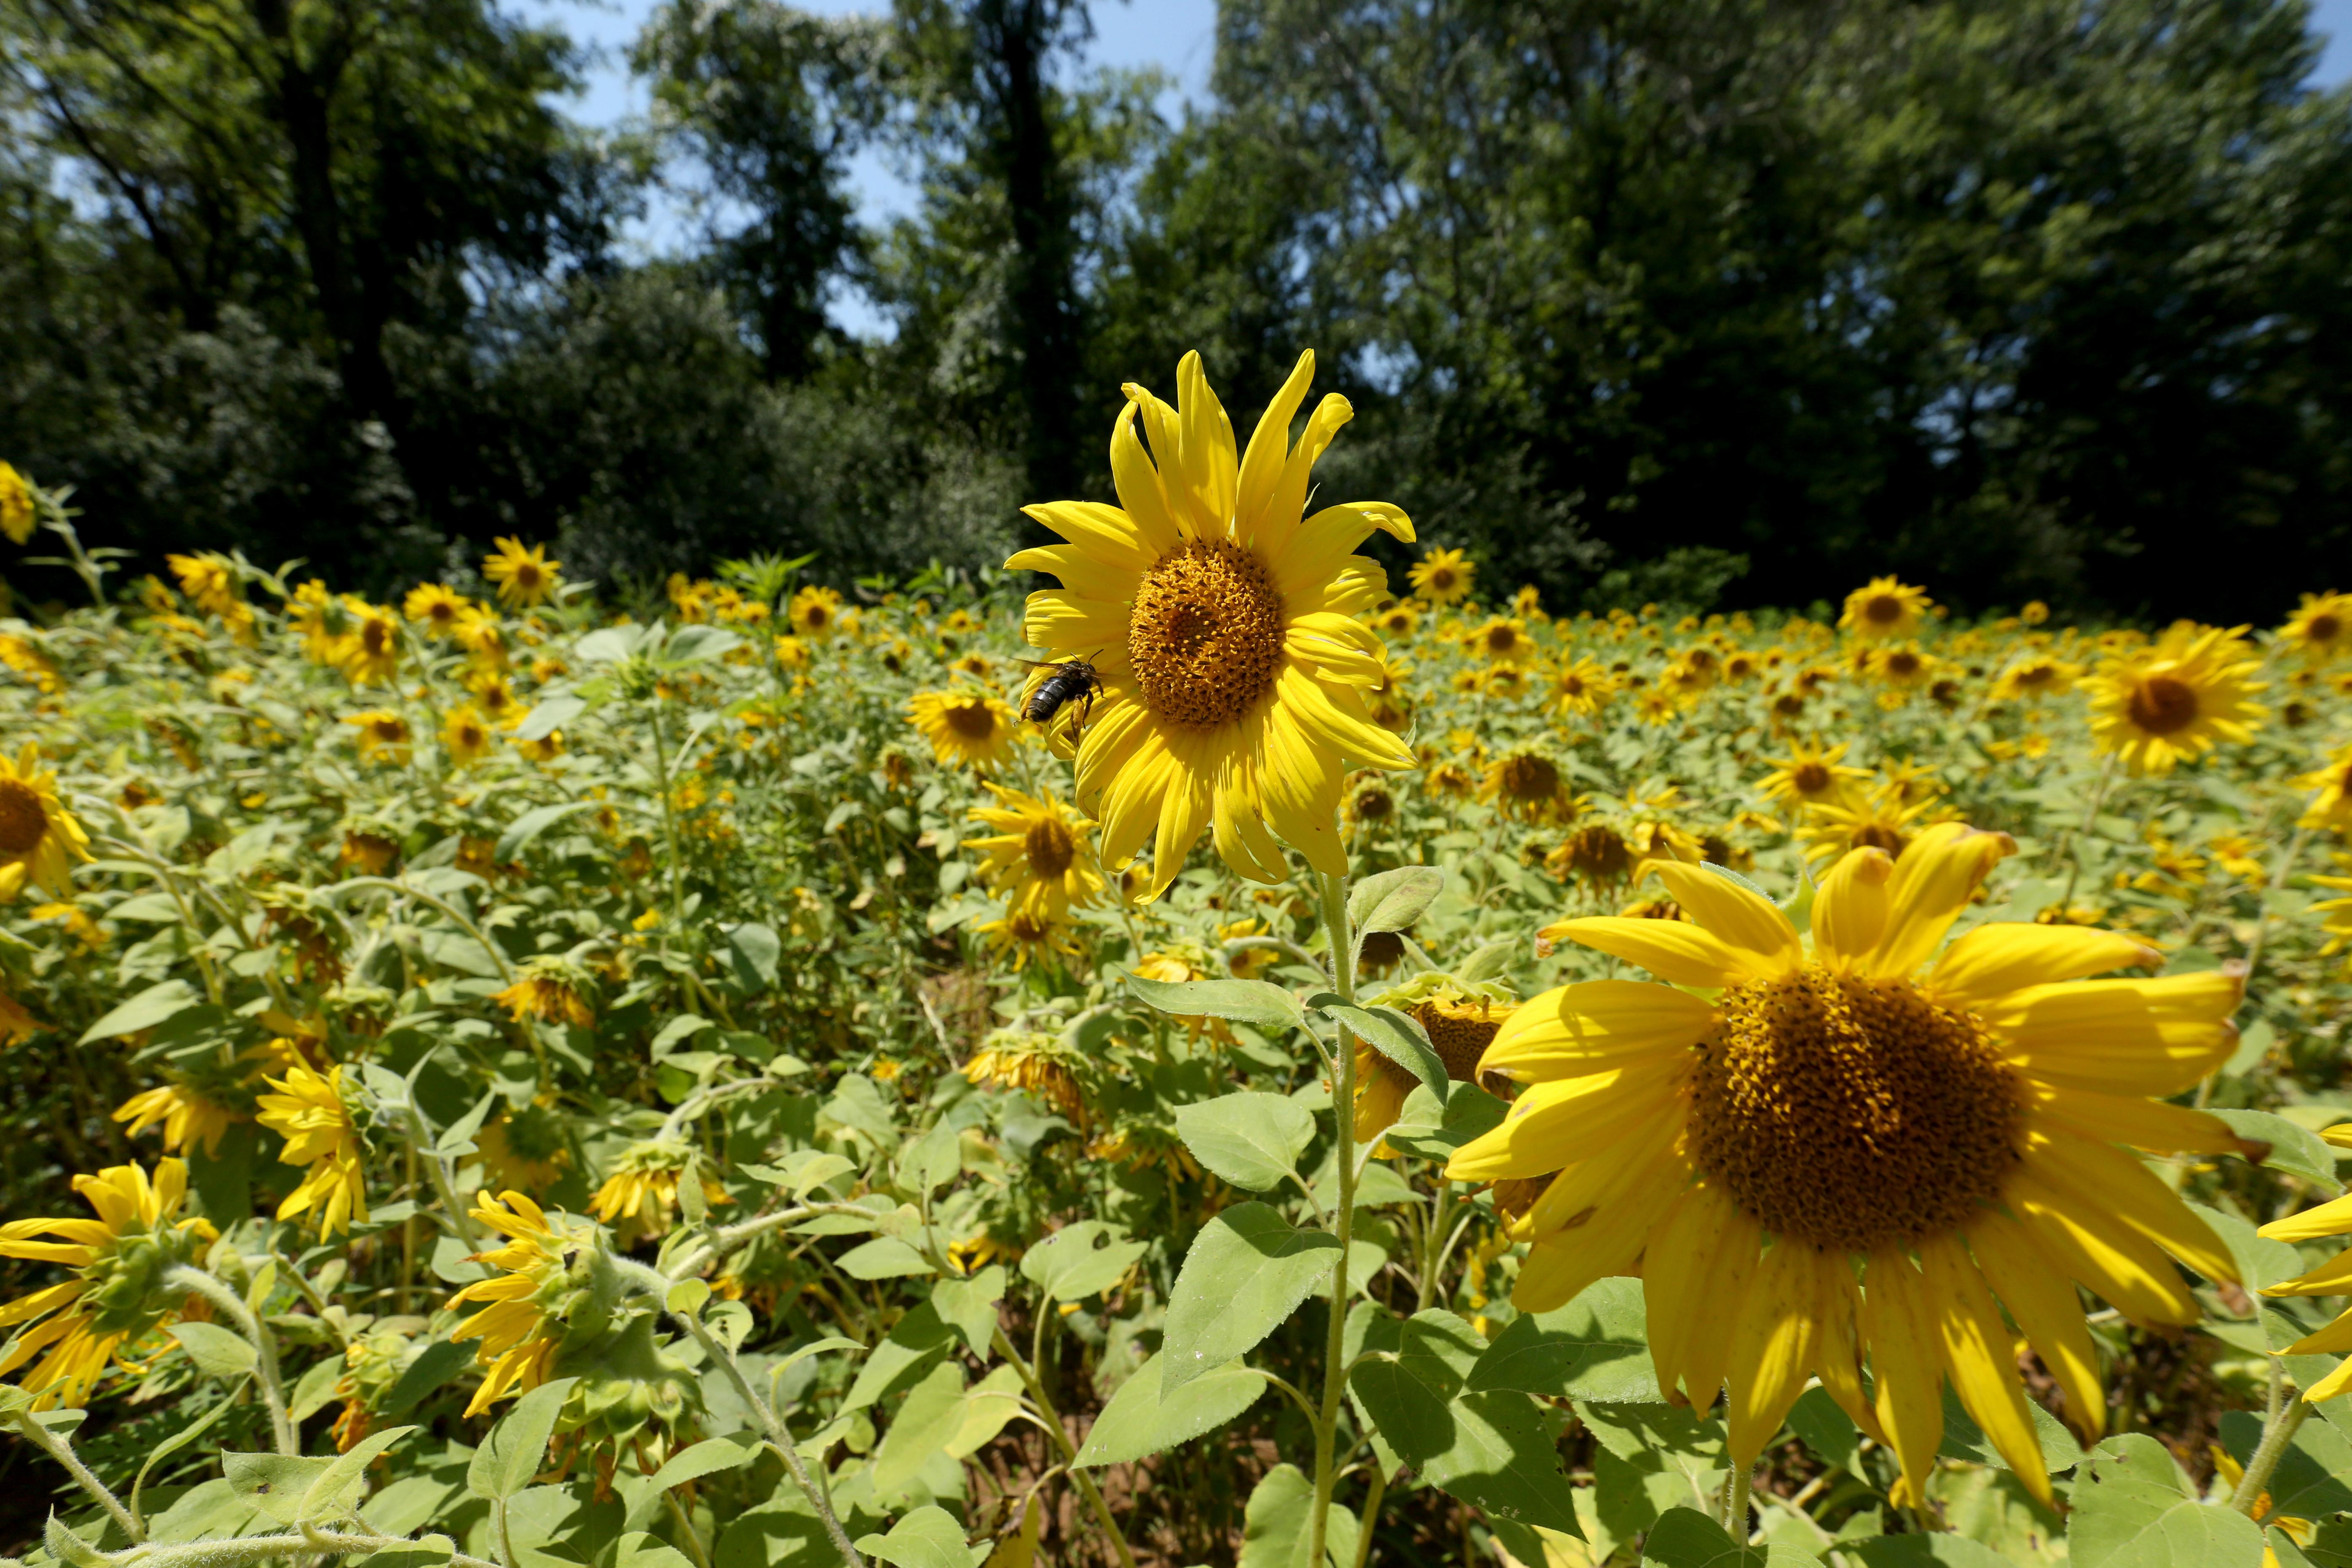 Tucked down River Road in Poolesville, Maryland, lies 30 acres of gloriously bright sunflowers.  The  McKee-Beshers Wildlife Management Area planted the sunflowers to support the local fauna, but visitors have been flocking to the area to snap a few pics while the fields are in bloom. Although some of the sunflowers are starting to droop a little, you still have maybe a week before this stunning annual display goes away. (Amanda Andrade-Rhoades/DC Refined)